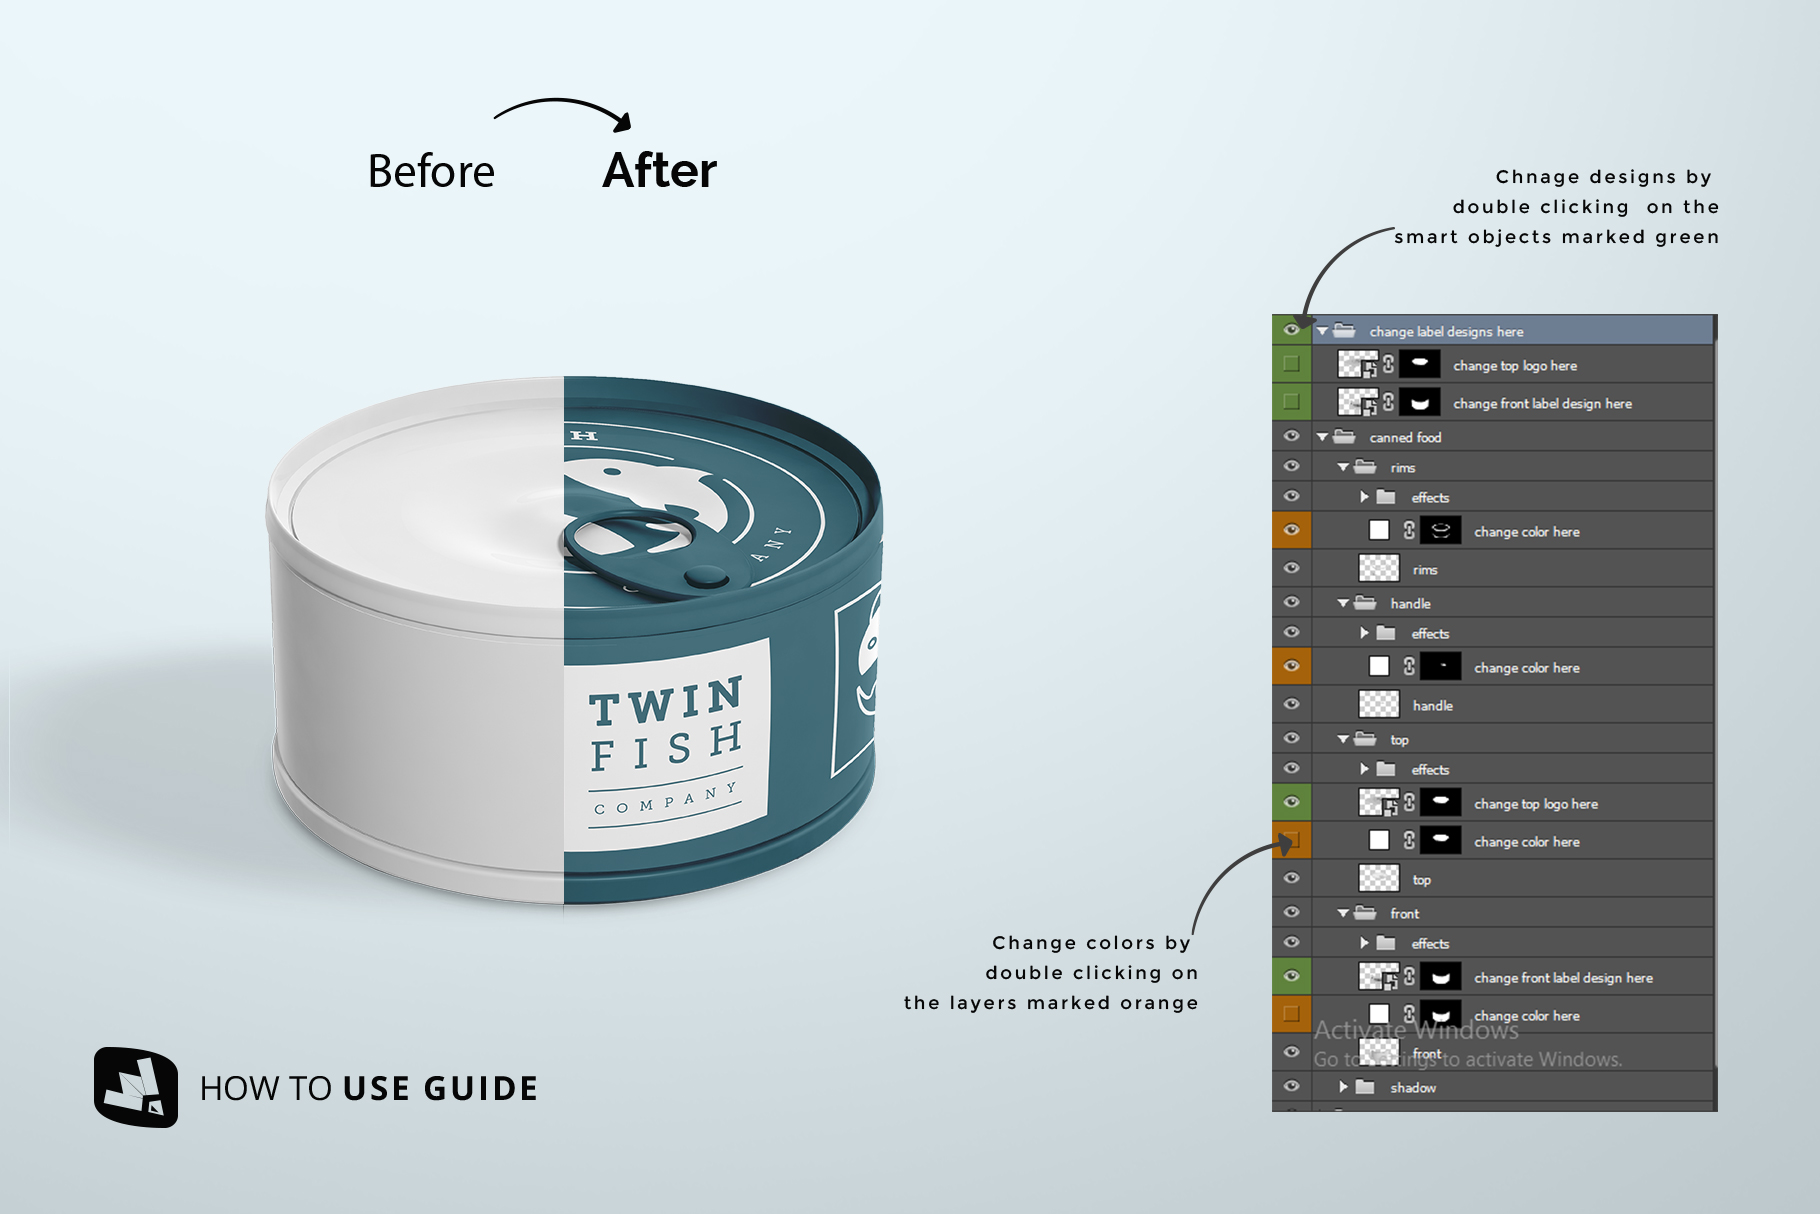 how to use guide of the circular canned food packaging mockup